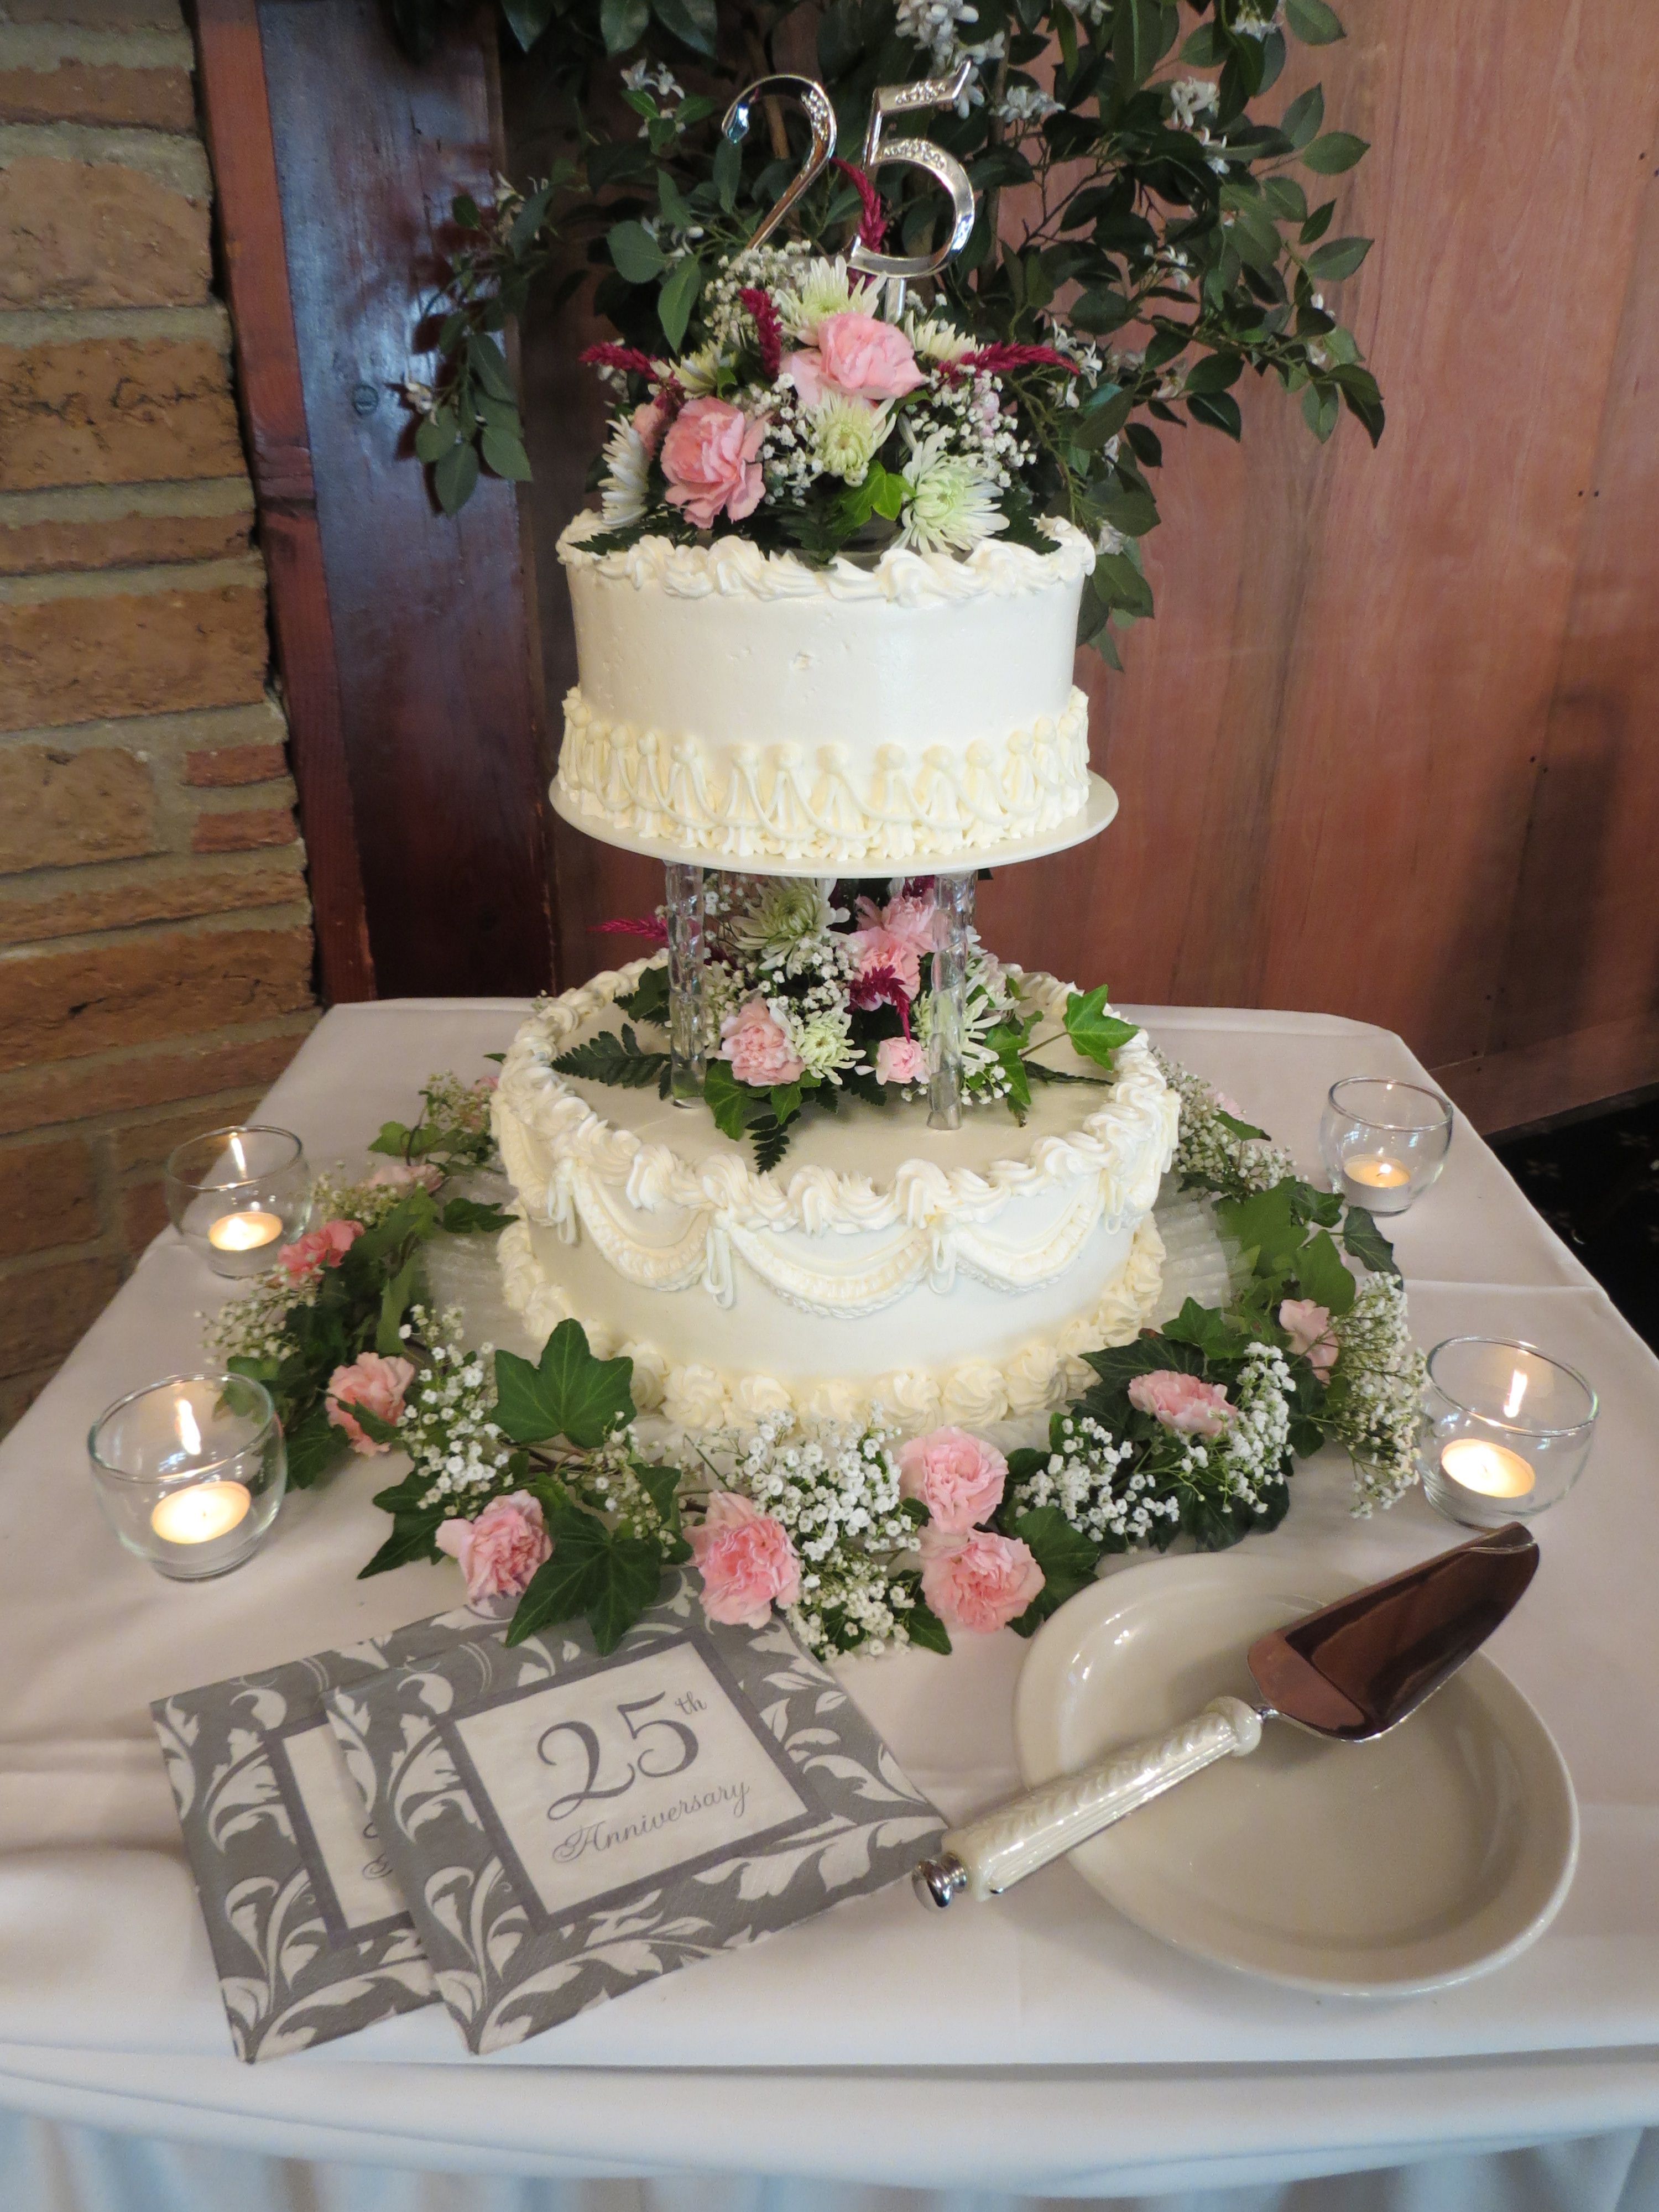 25th Wedding Anniversary Cake decorated in house by Joanne